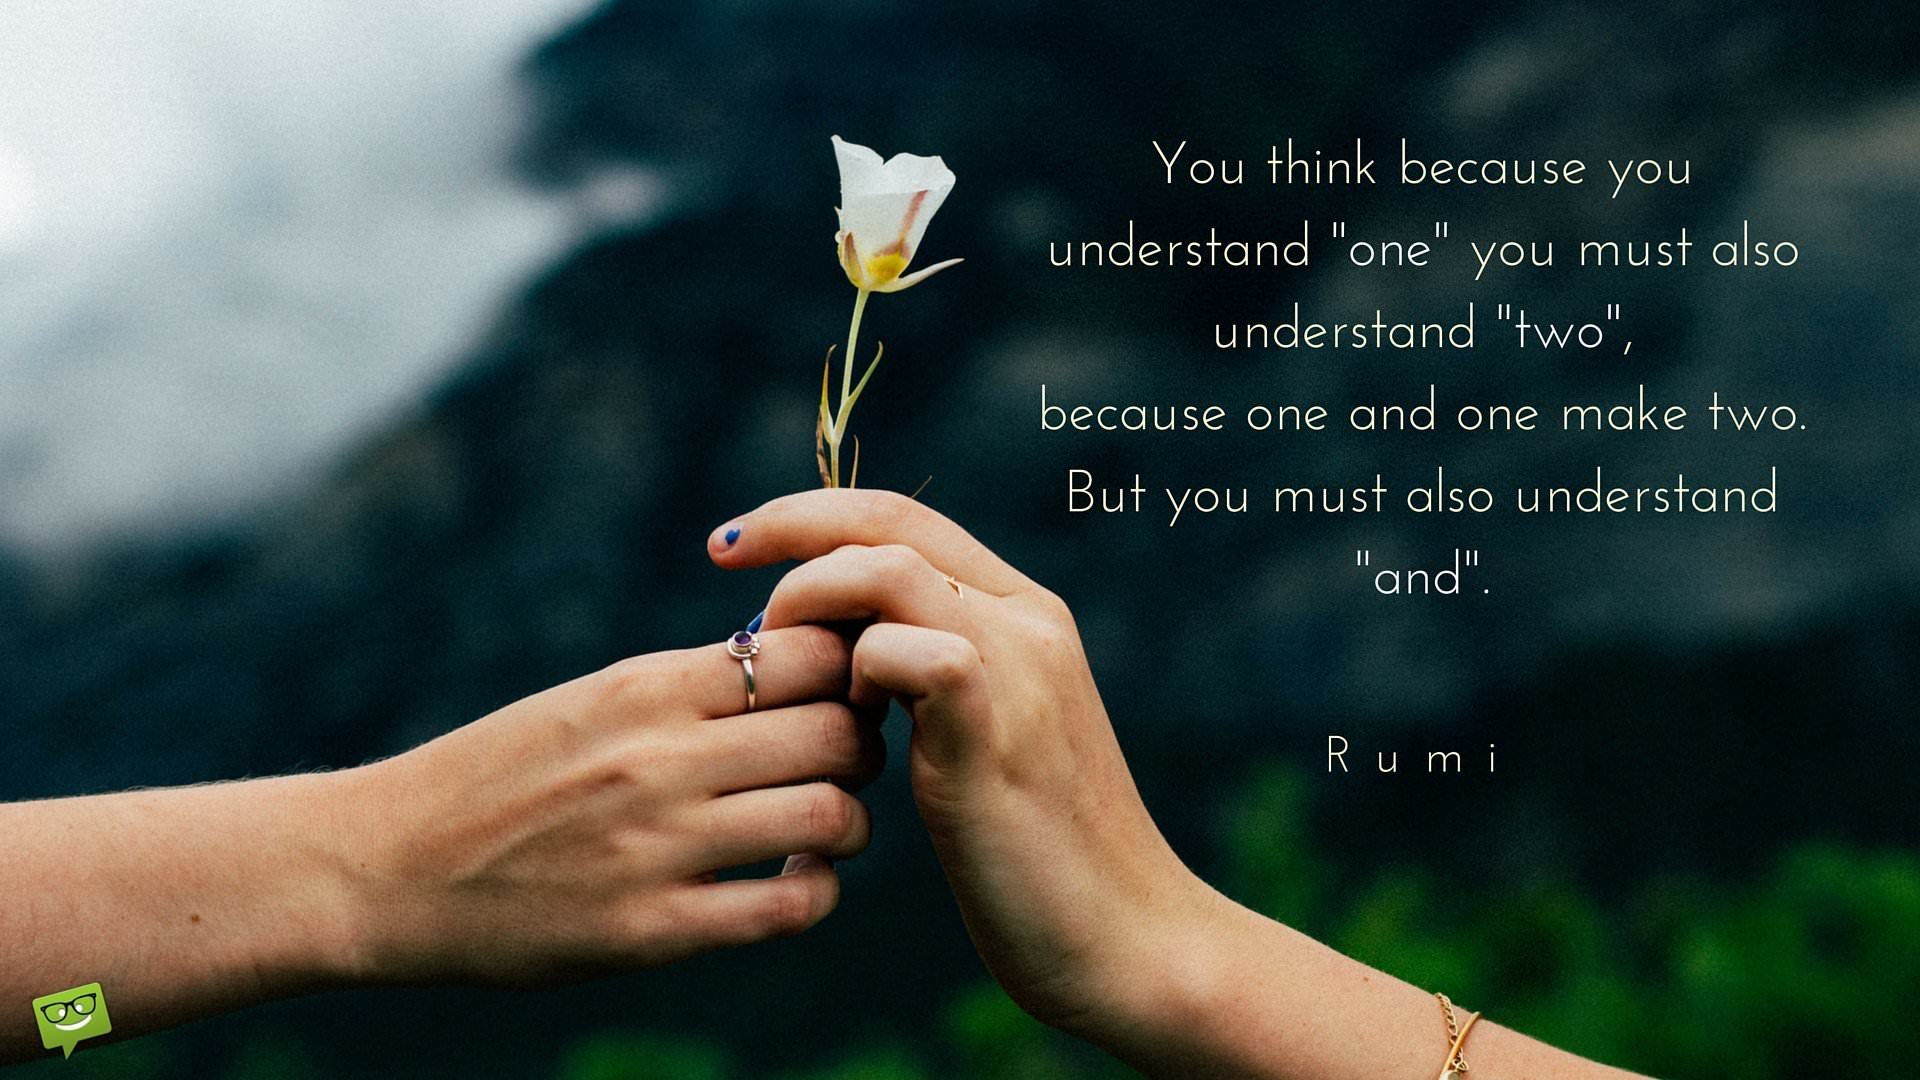 Rumi On Love Read His Best Quotes On What Makes Us One